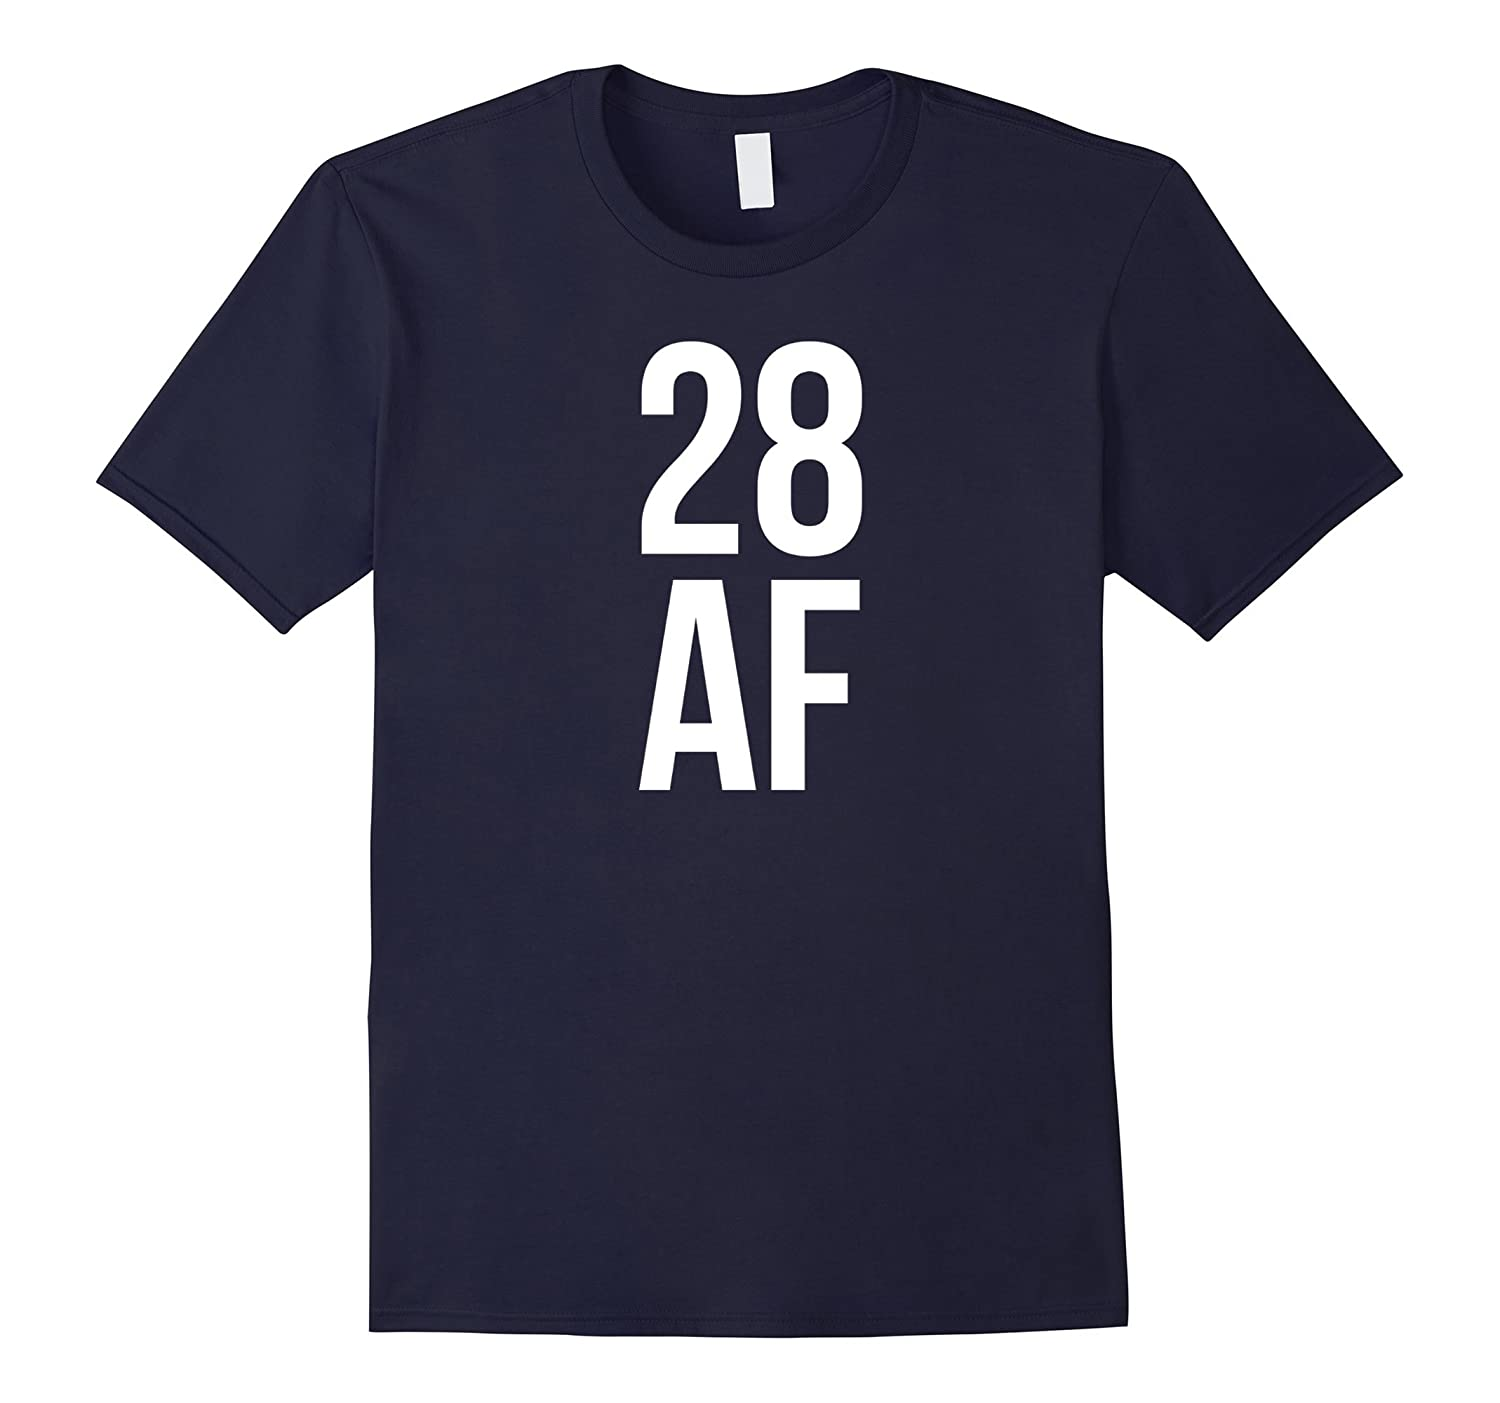 28 AF Tshirt 28th Birthday Shirt Tee Top Mens Womens-PL